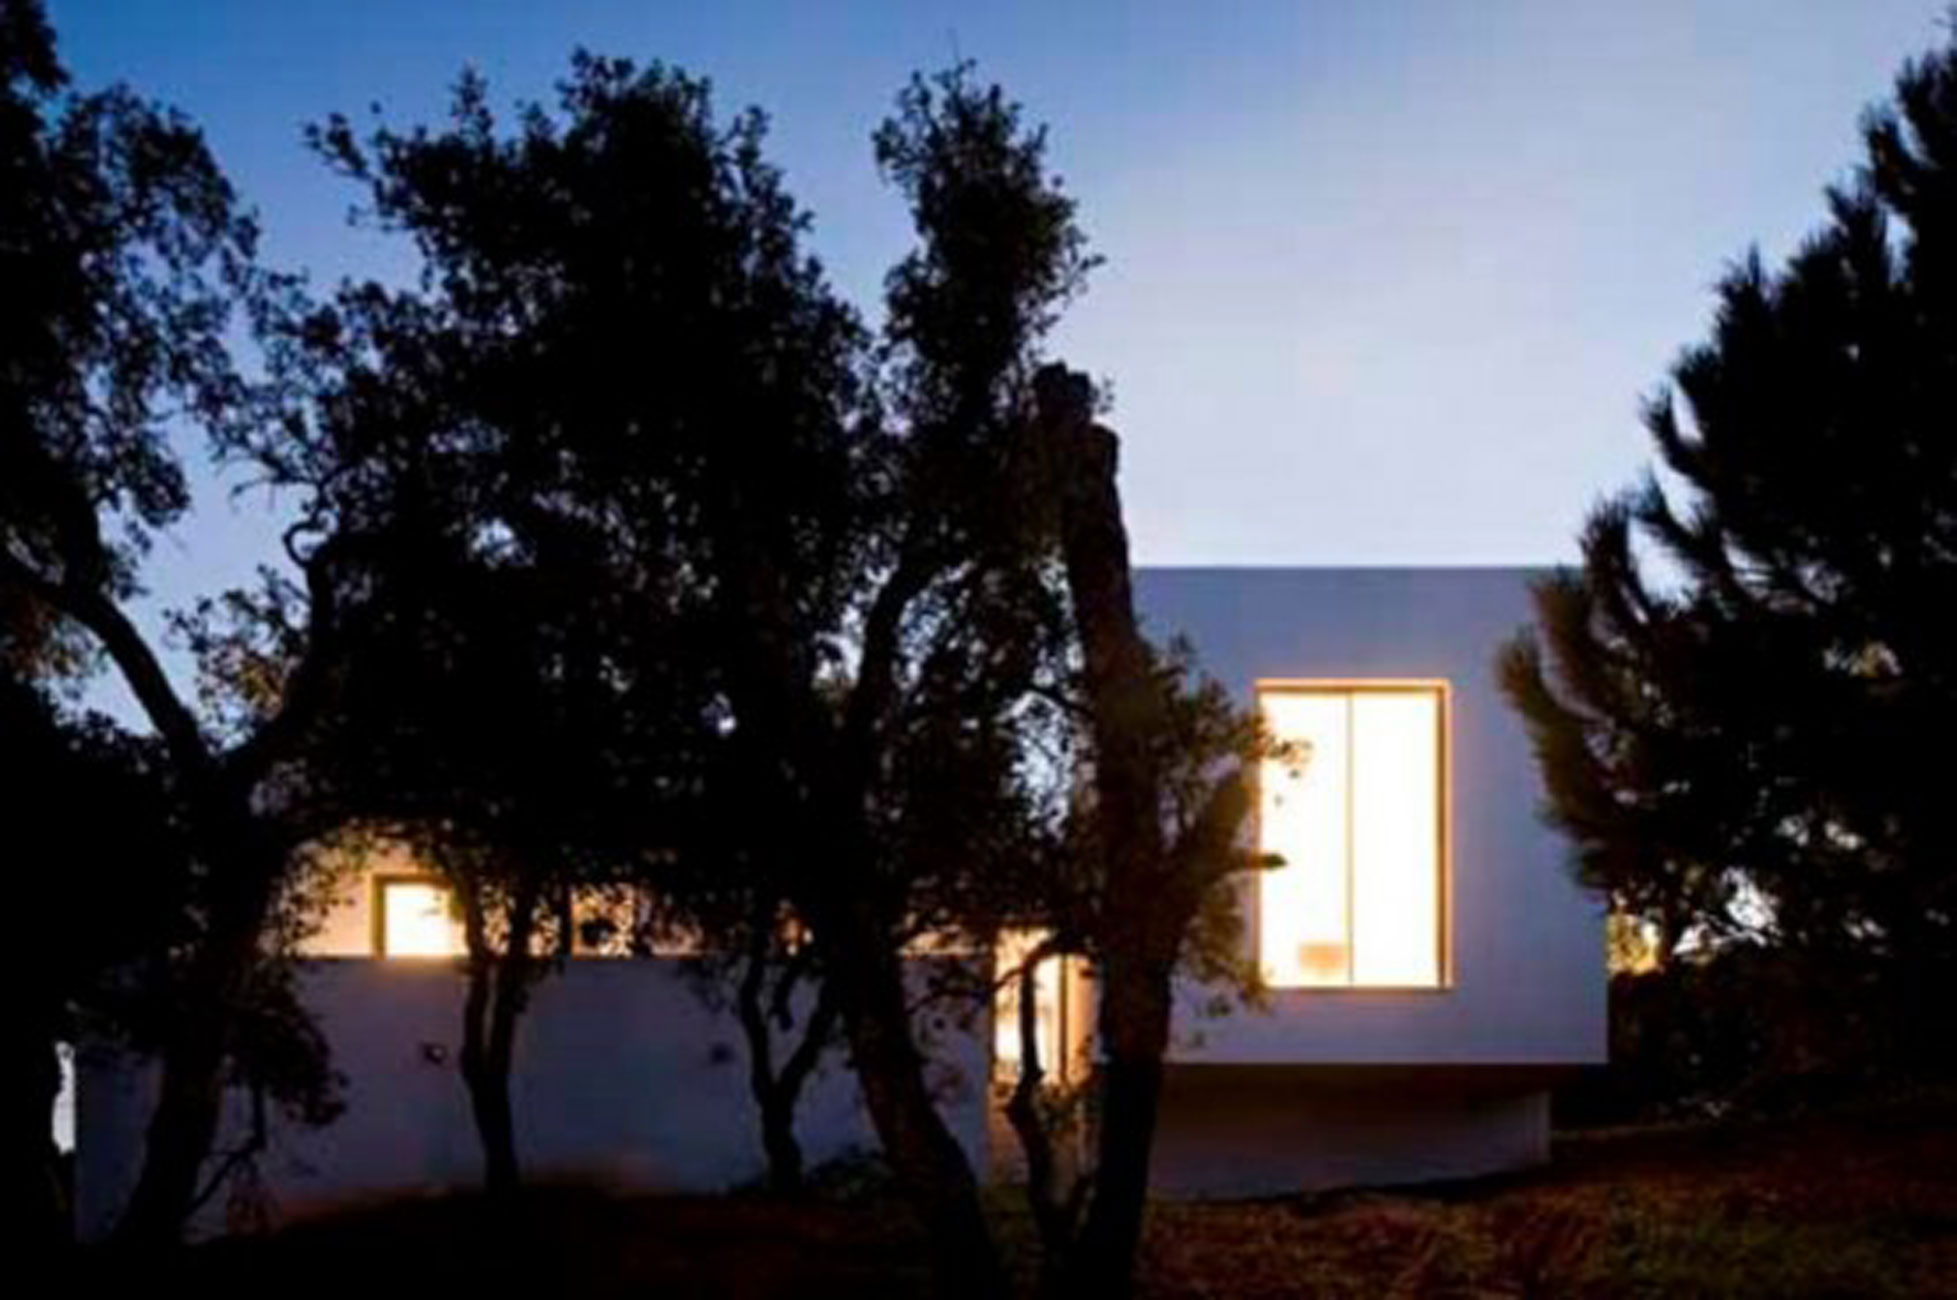 Miraventos, Modern House Design in Portugal by Eduardo Trigo de Sousa and ComA - Trees